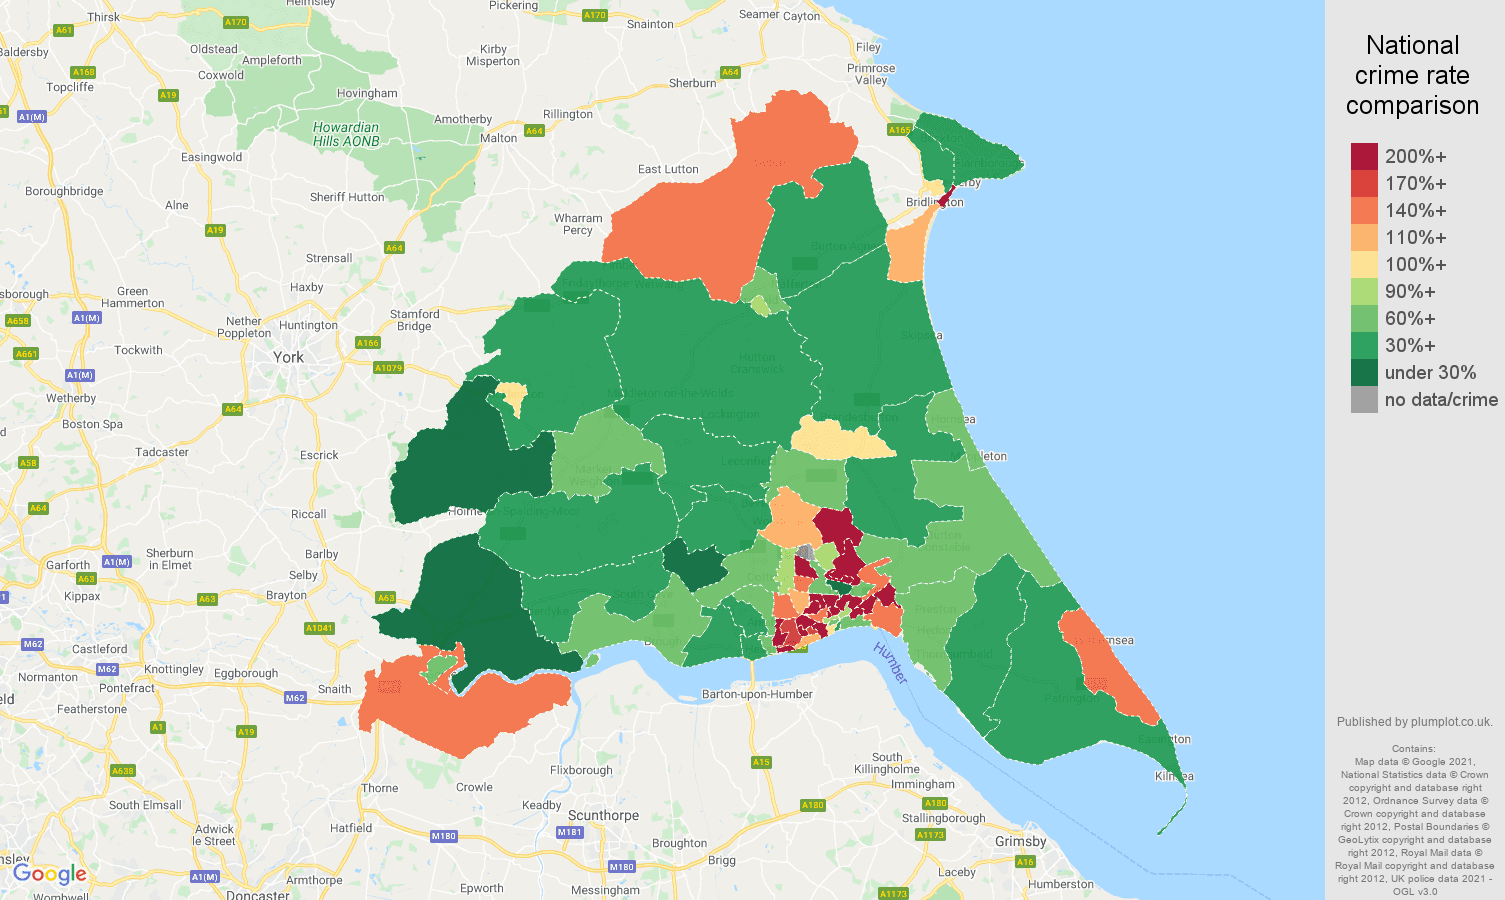 East Riding of Yorkshire criminal damage and arson crime rate comparison map